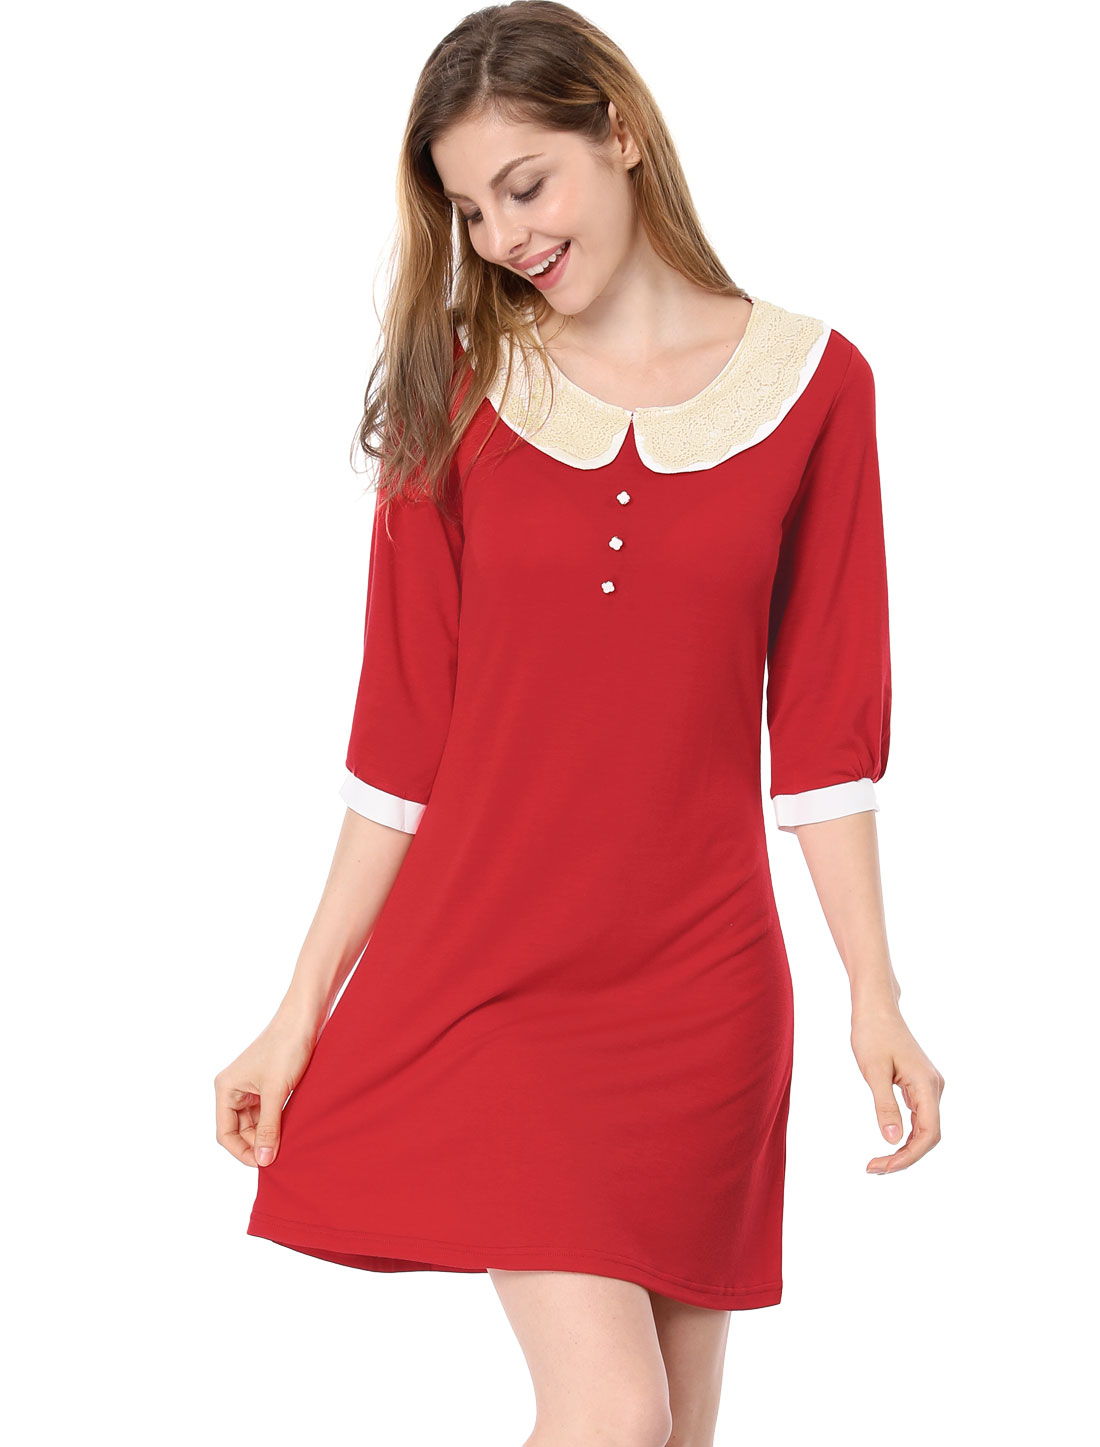 Lady Red Layered Peter Pan Collar 3/4 Sleeve Stretchy Casual Dress S